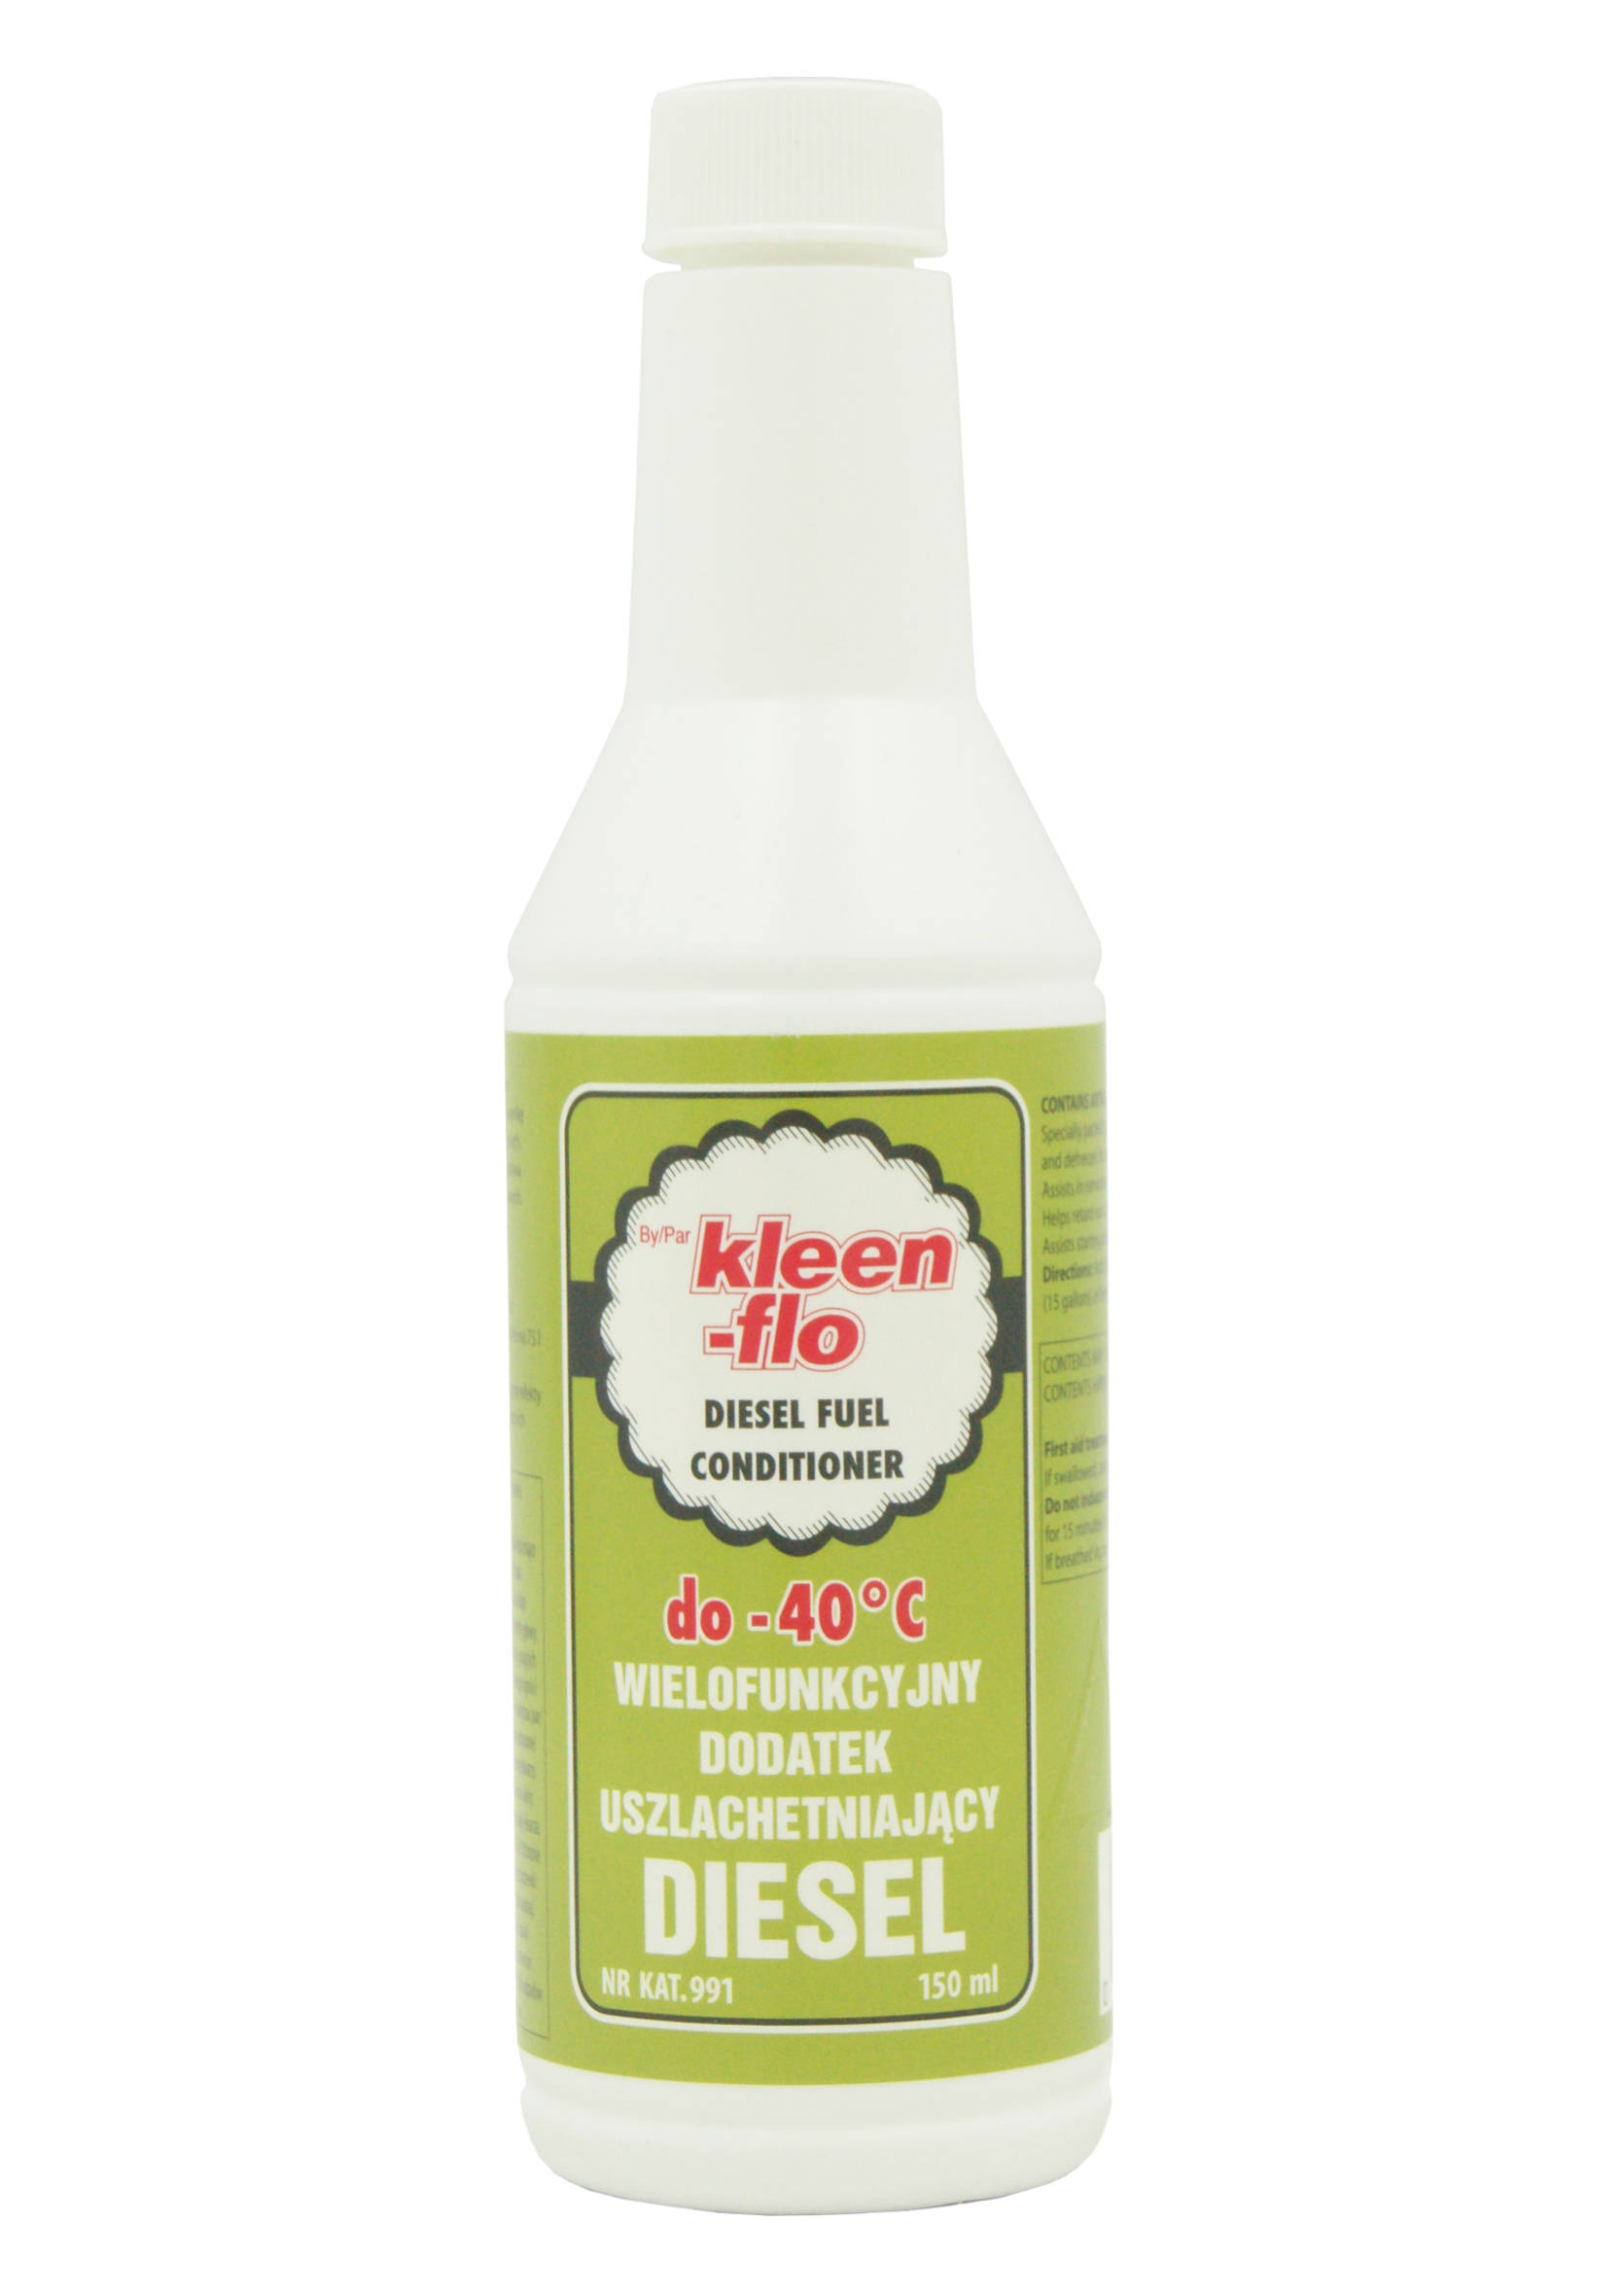 Kleen-Flo Diesel Fuel Conditioner 150ml Uszlachetniający Dodatek do Diesla